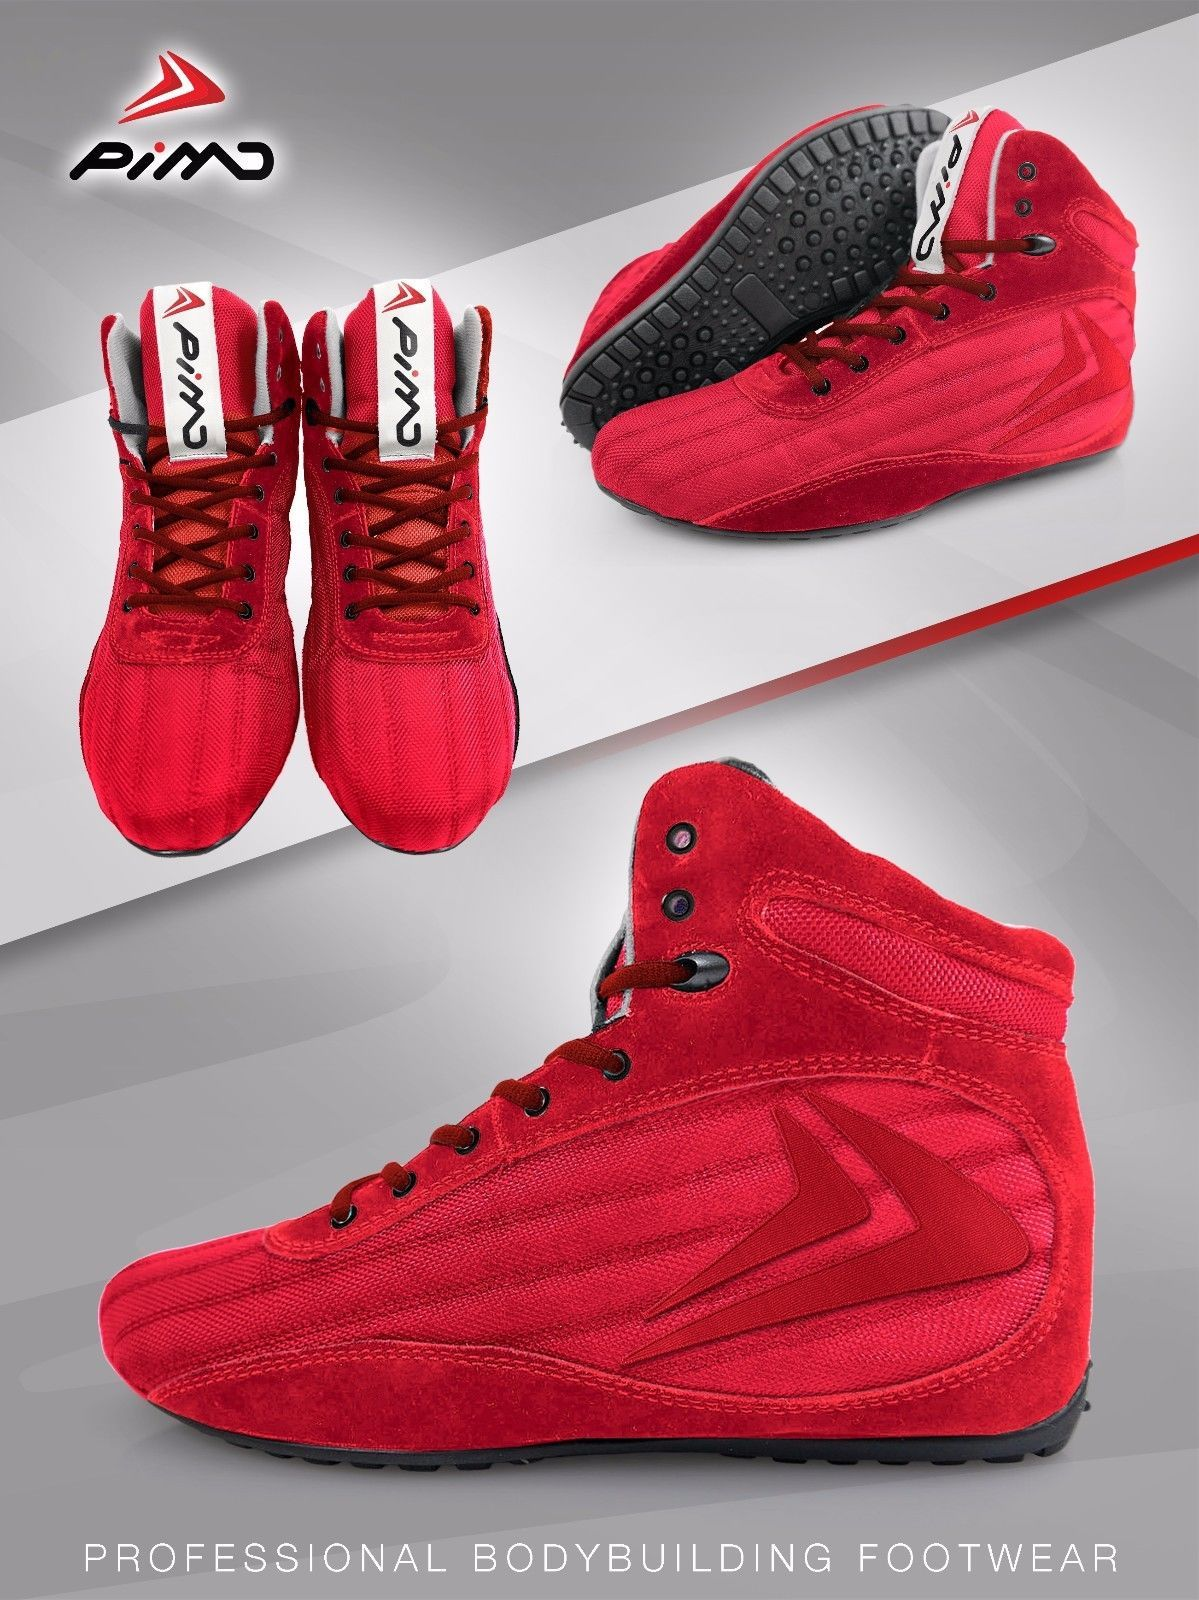 6946f6938f7c95 Pimd red  x-core gym  shoes weight lifting high top boots bodybuilding mma